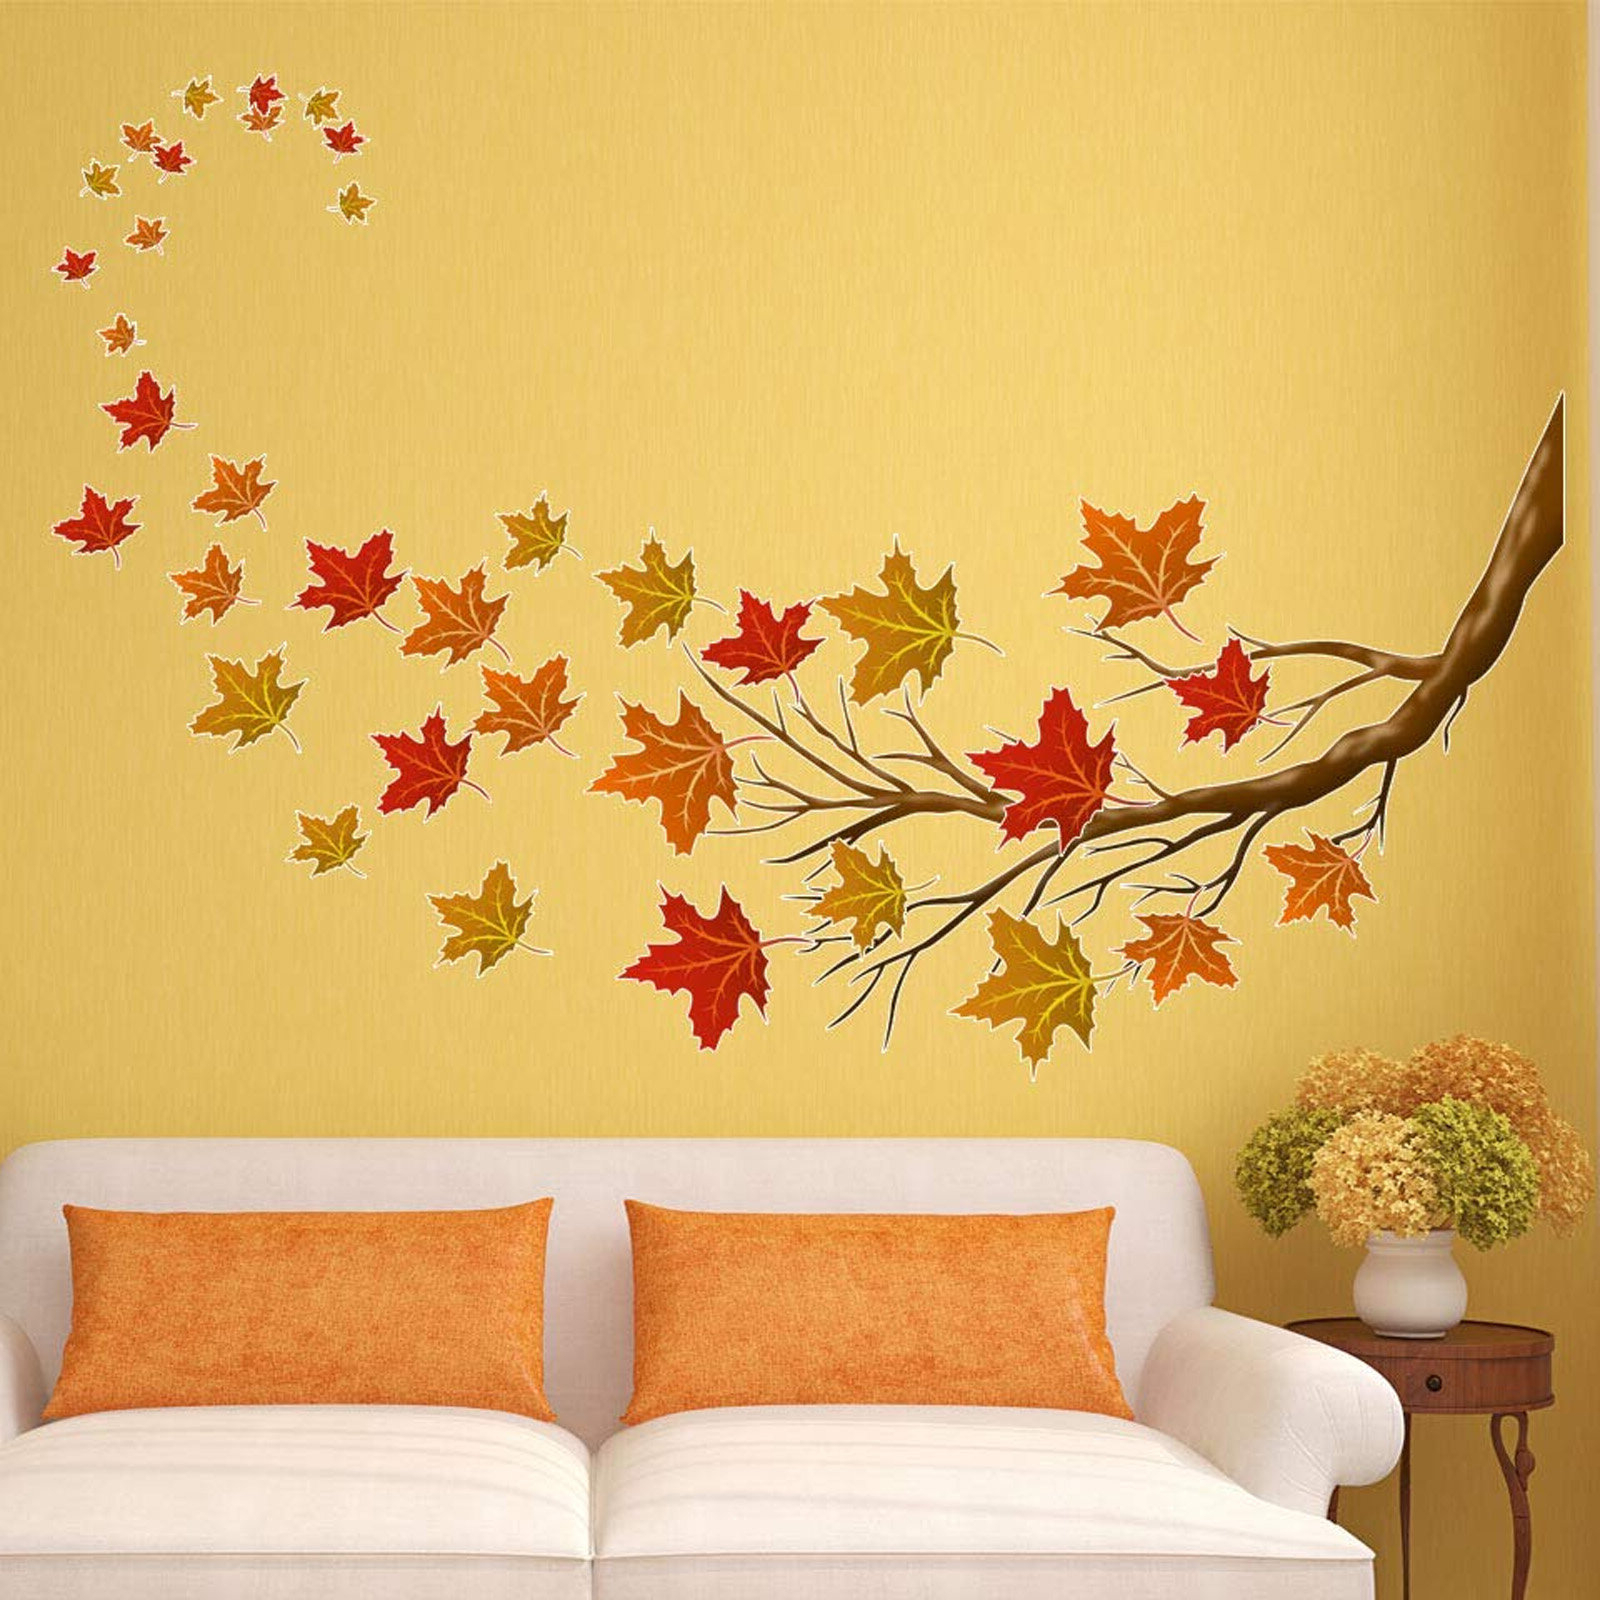 37 Piece Autumn Leaves Tree Branch Fall Decorations Wall Decal Set For Most Recently Released Tree Wall Décor By Winston Porter (View 12 of 20)